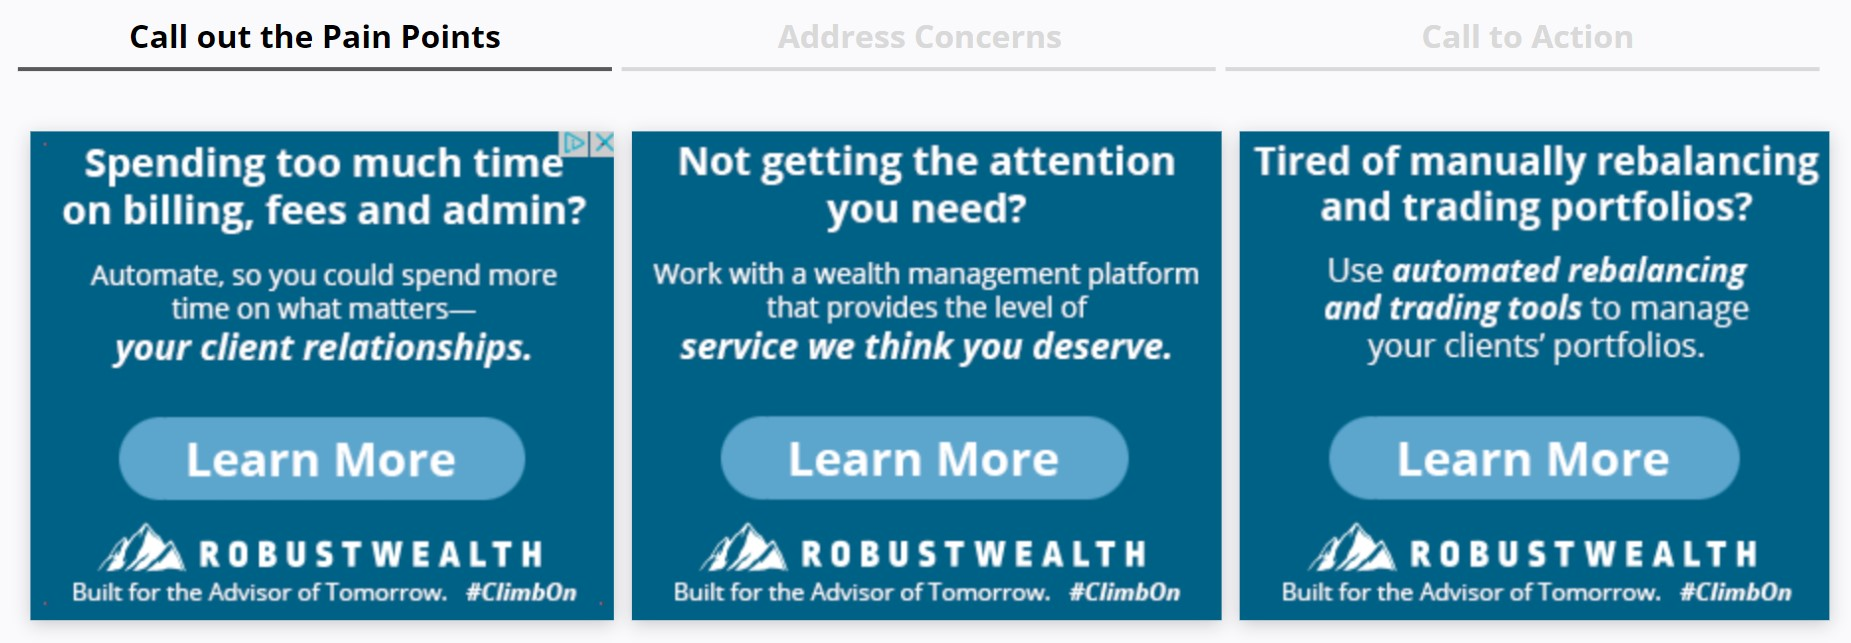 RobustWealth - Display Ads Call Out Financial Advisors Pain Points